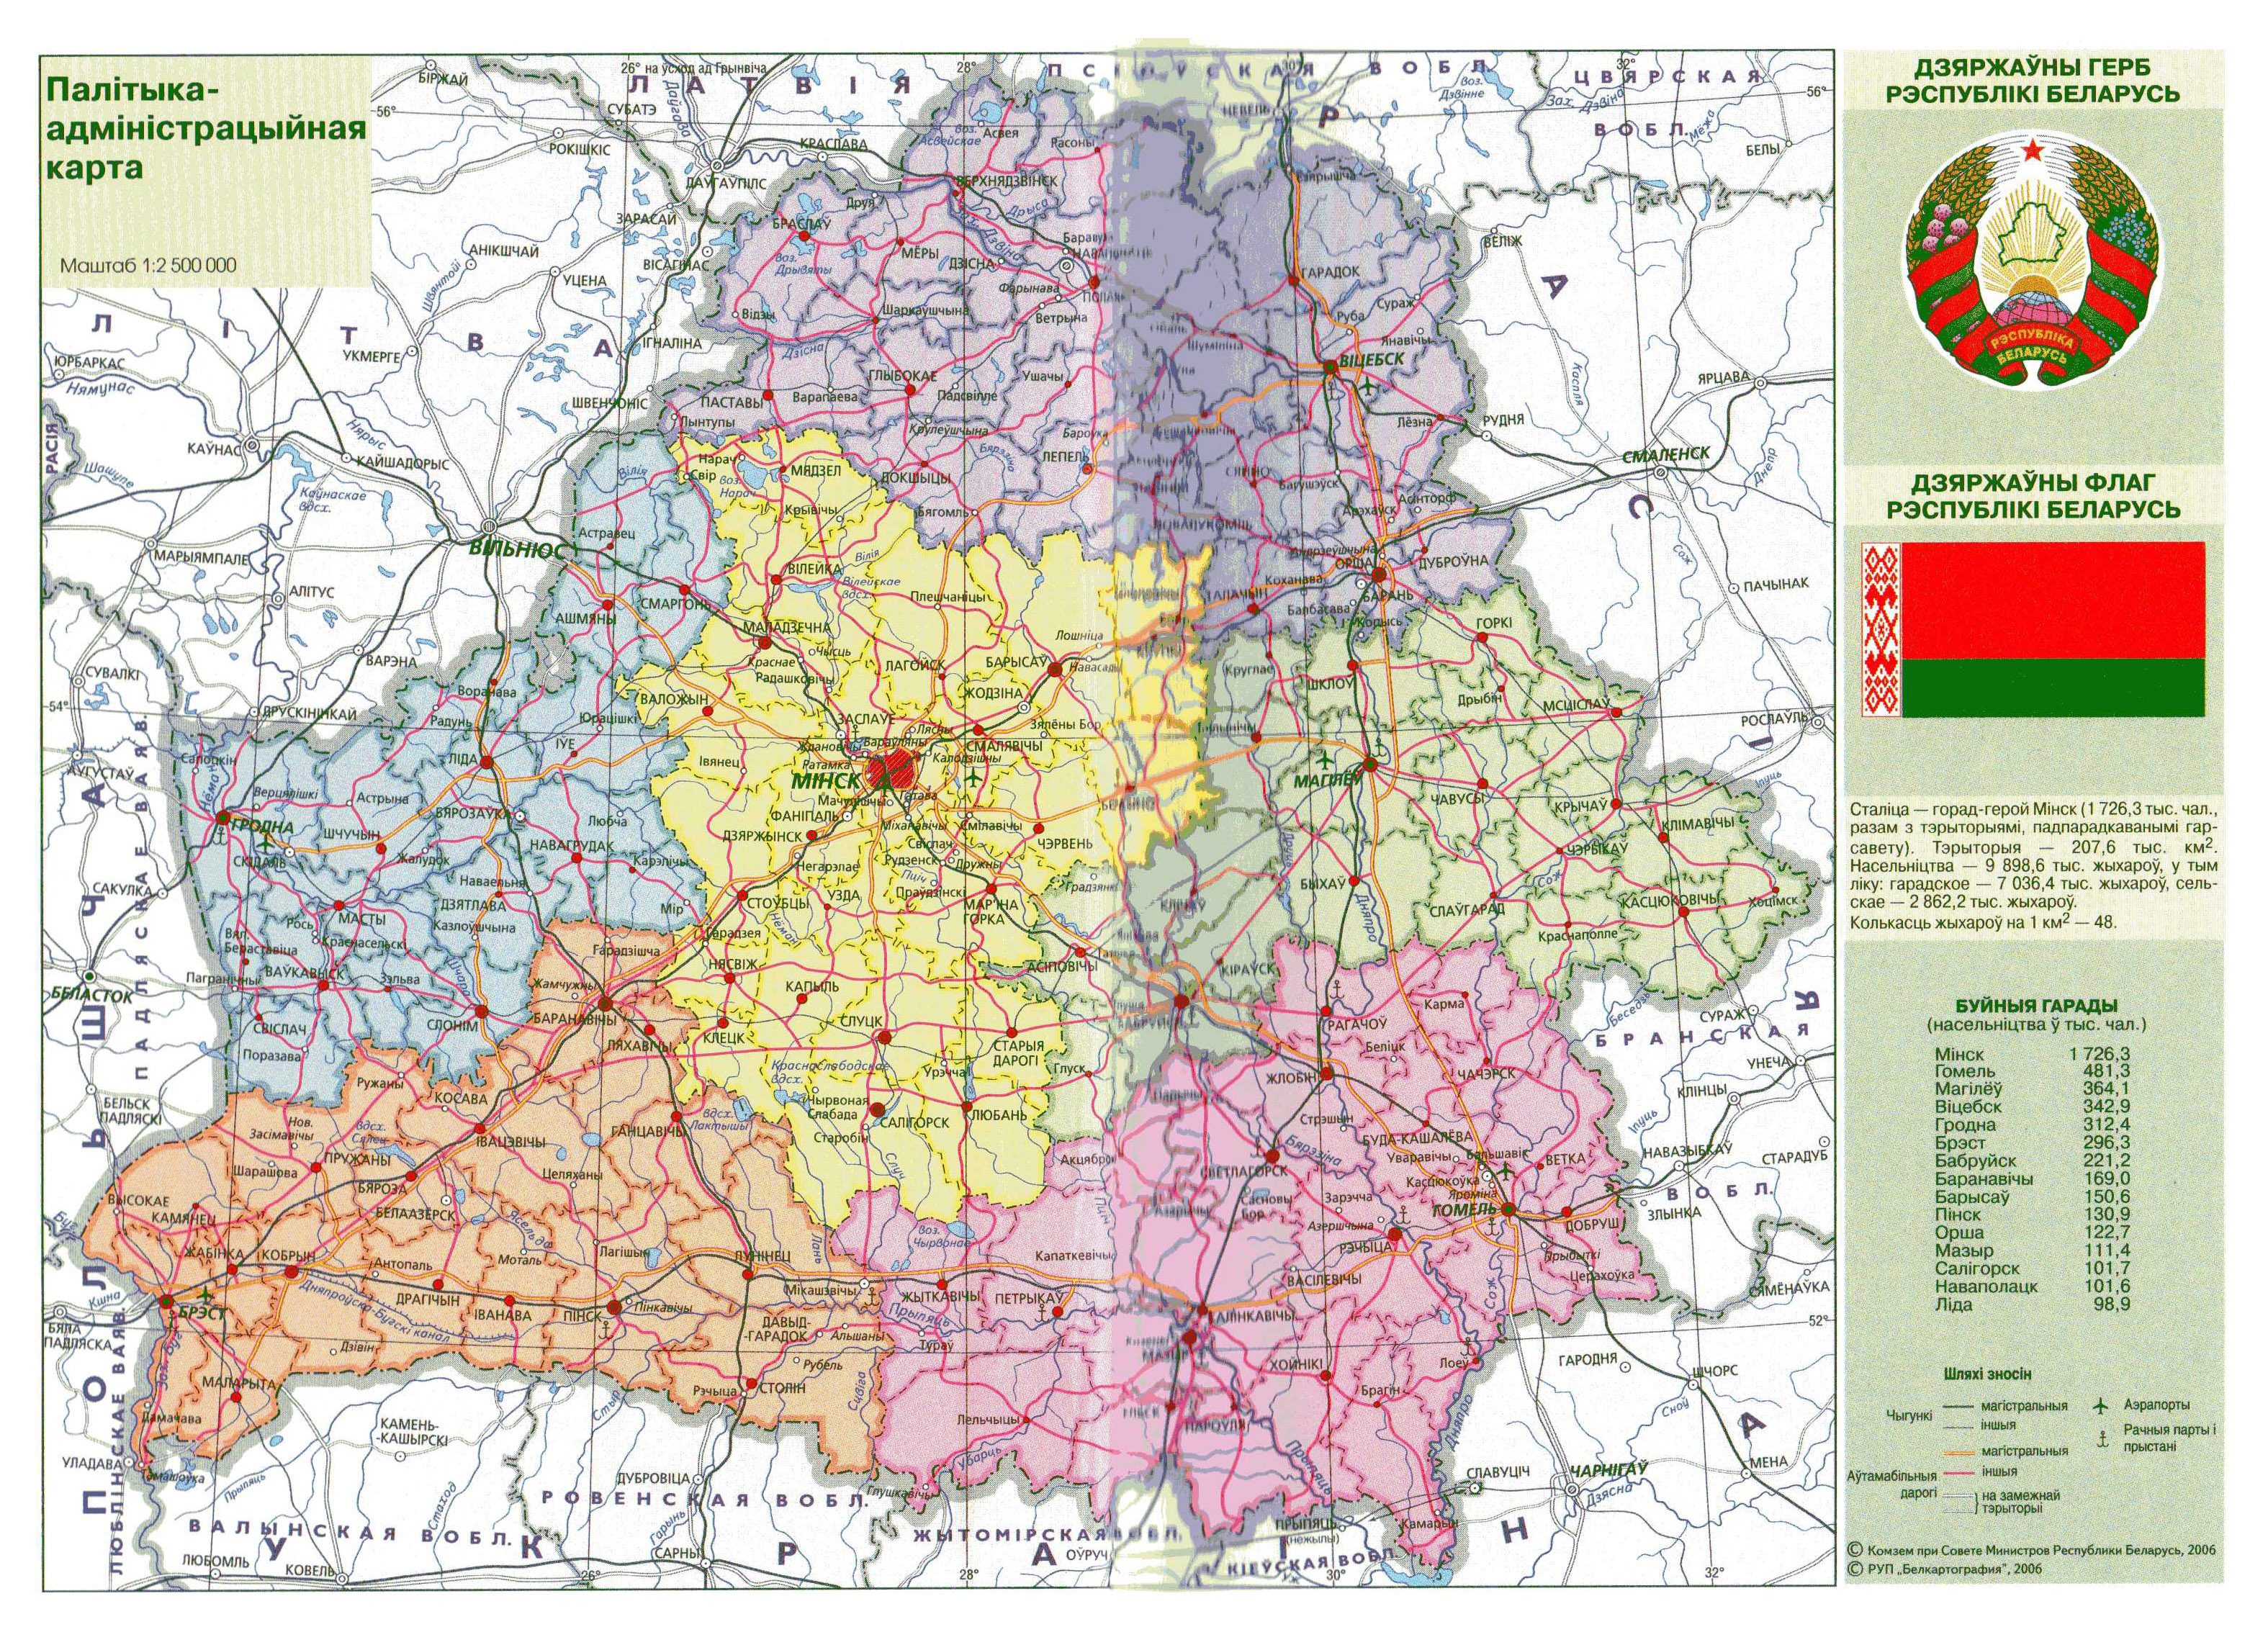 Large scale political and administrative map of Belarus with roads